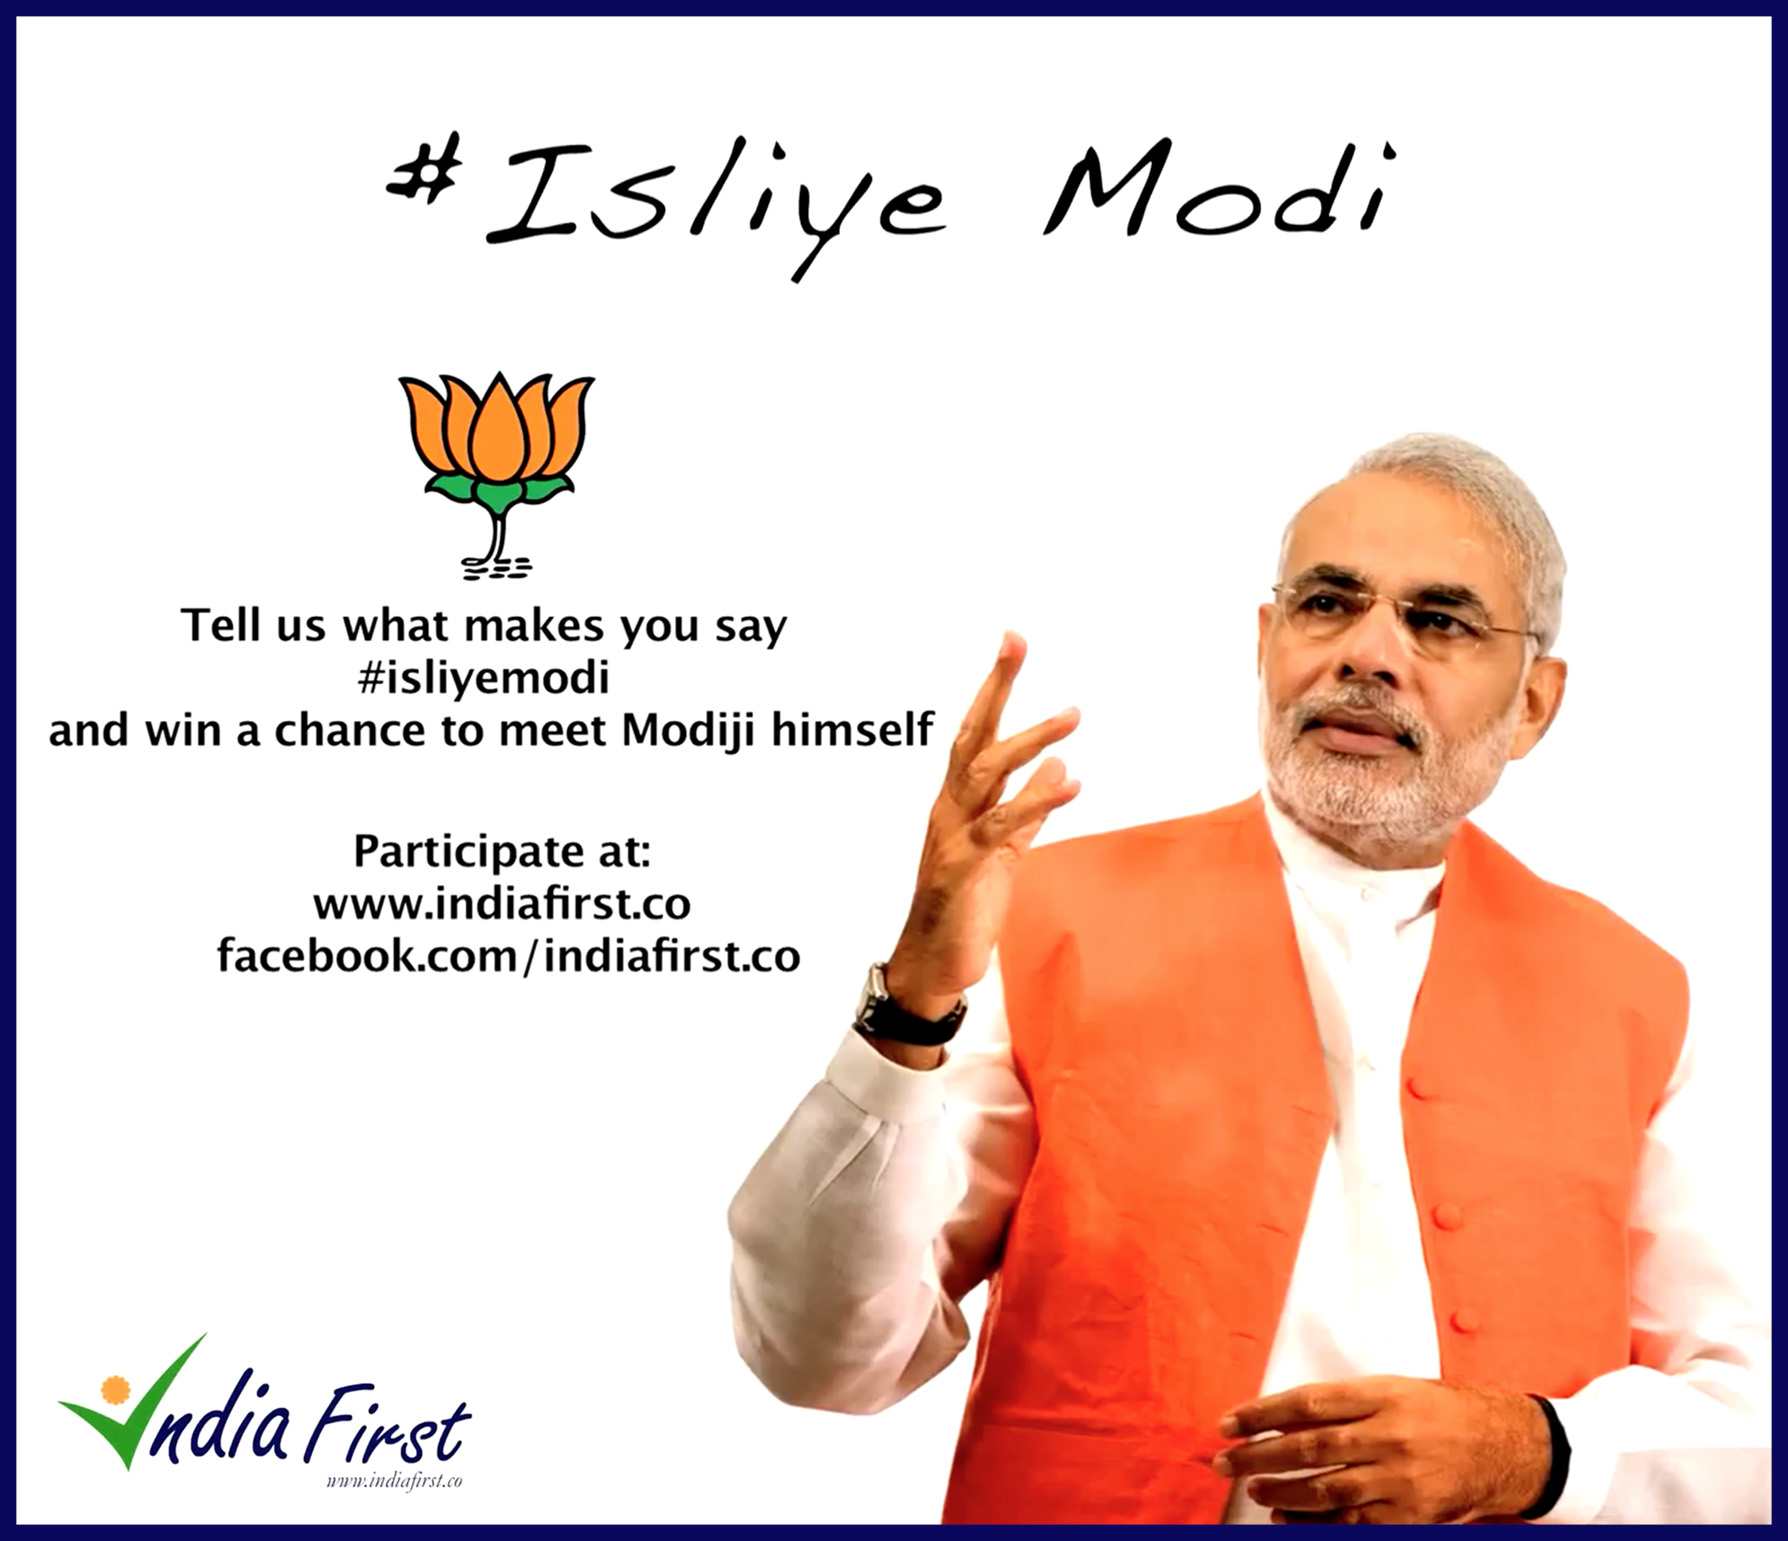 India First - IsliyeModi